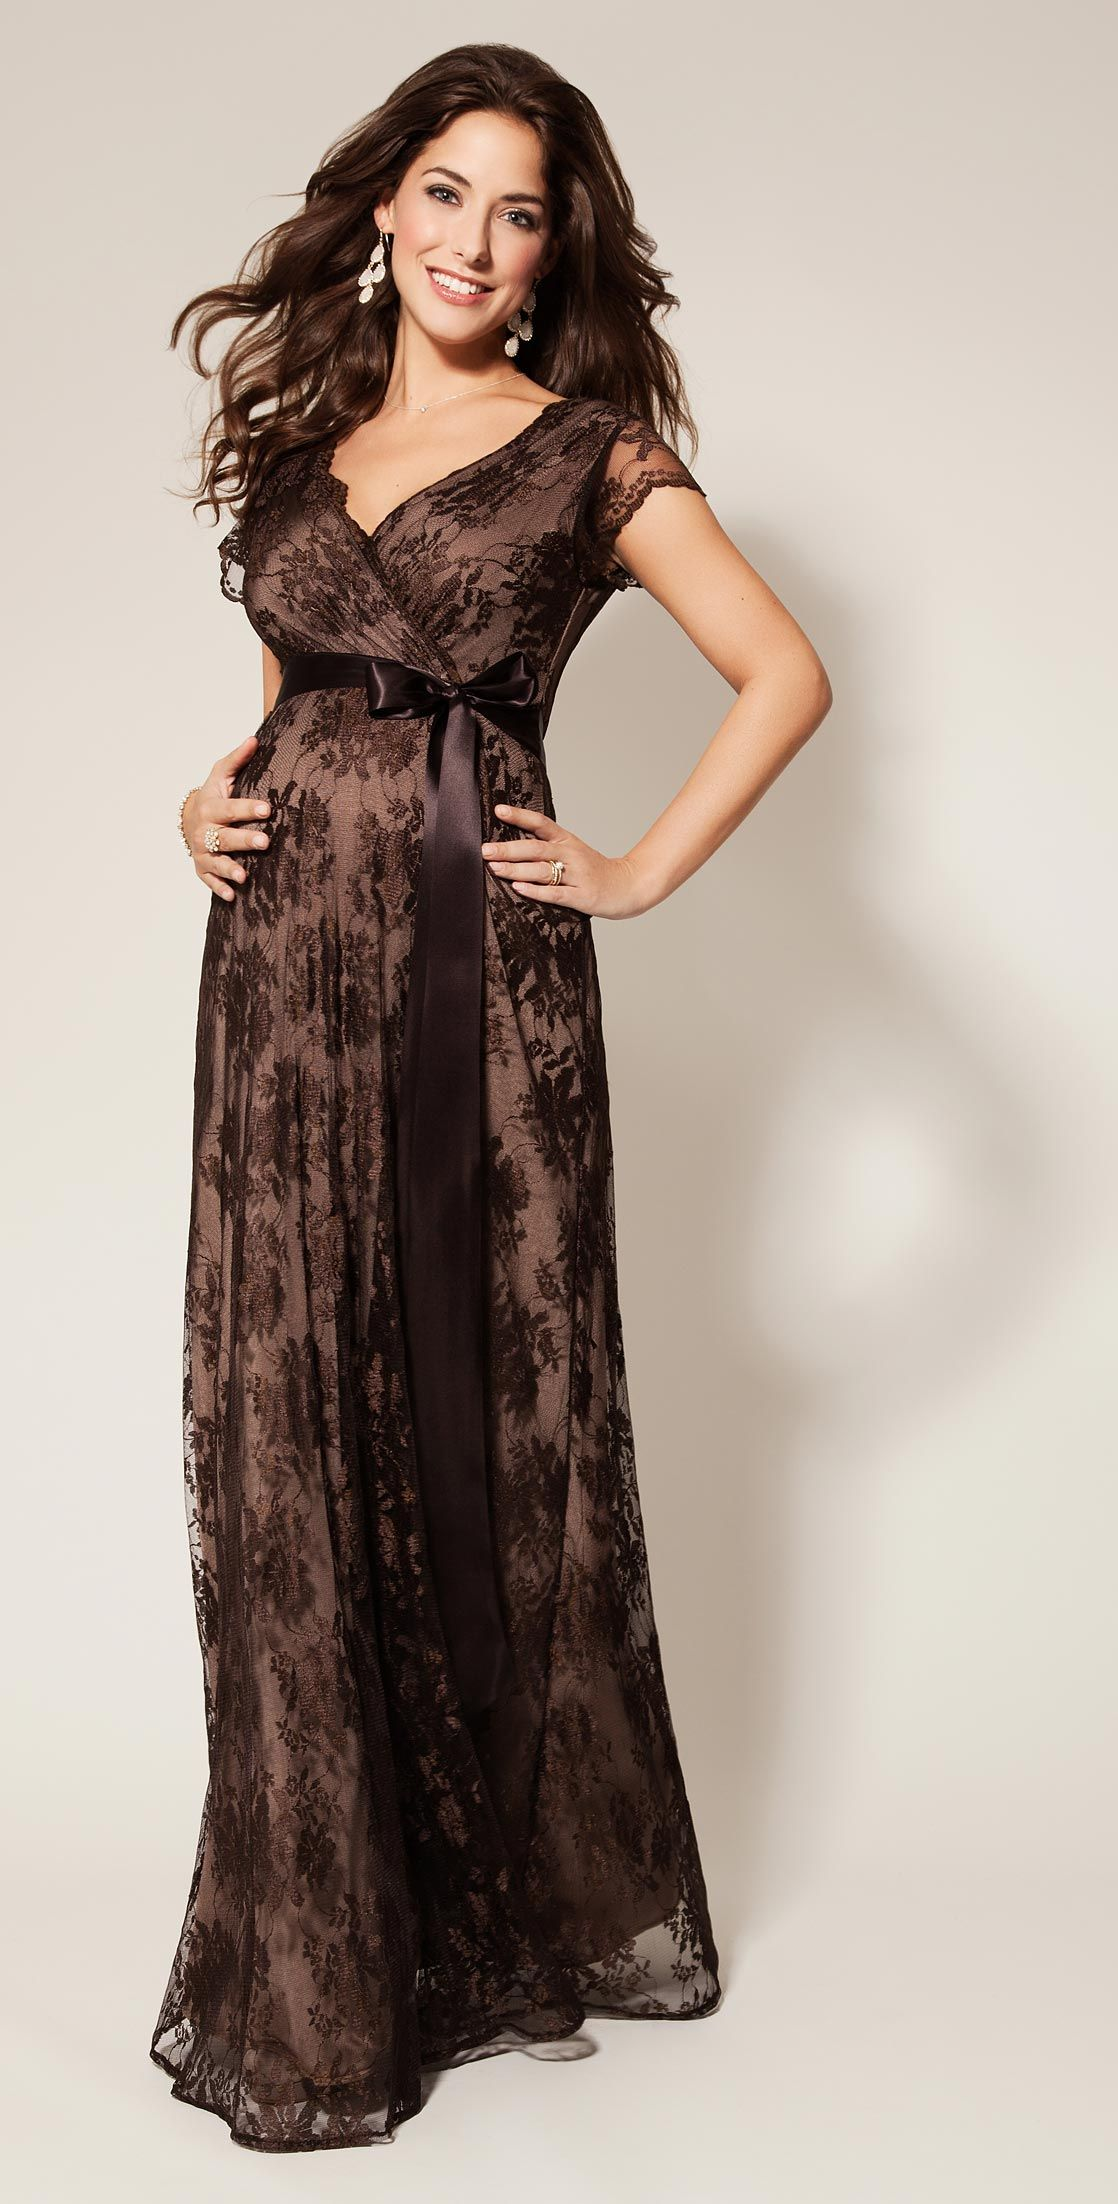 f52467c76b270 Eden Maternity Gown Long Chocolate - Maternity Wedding Dresses, Evening Wear  and Party Clothes by Tiffany Rose